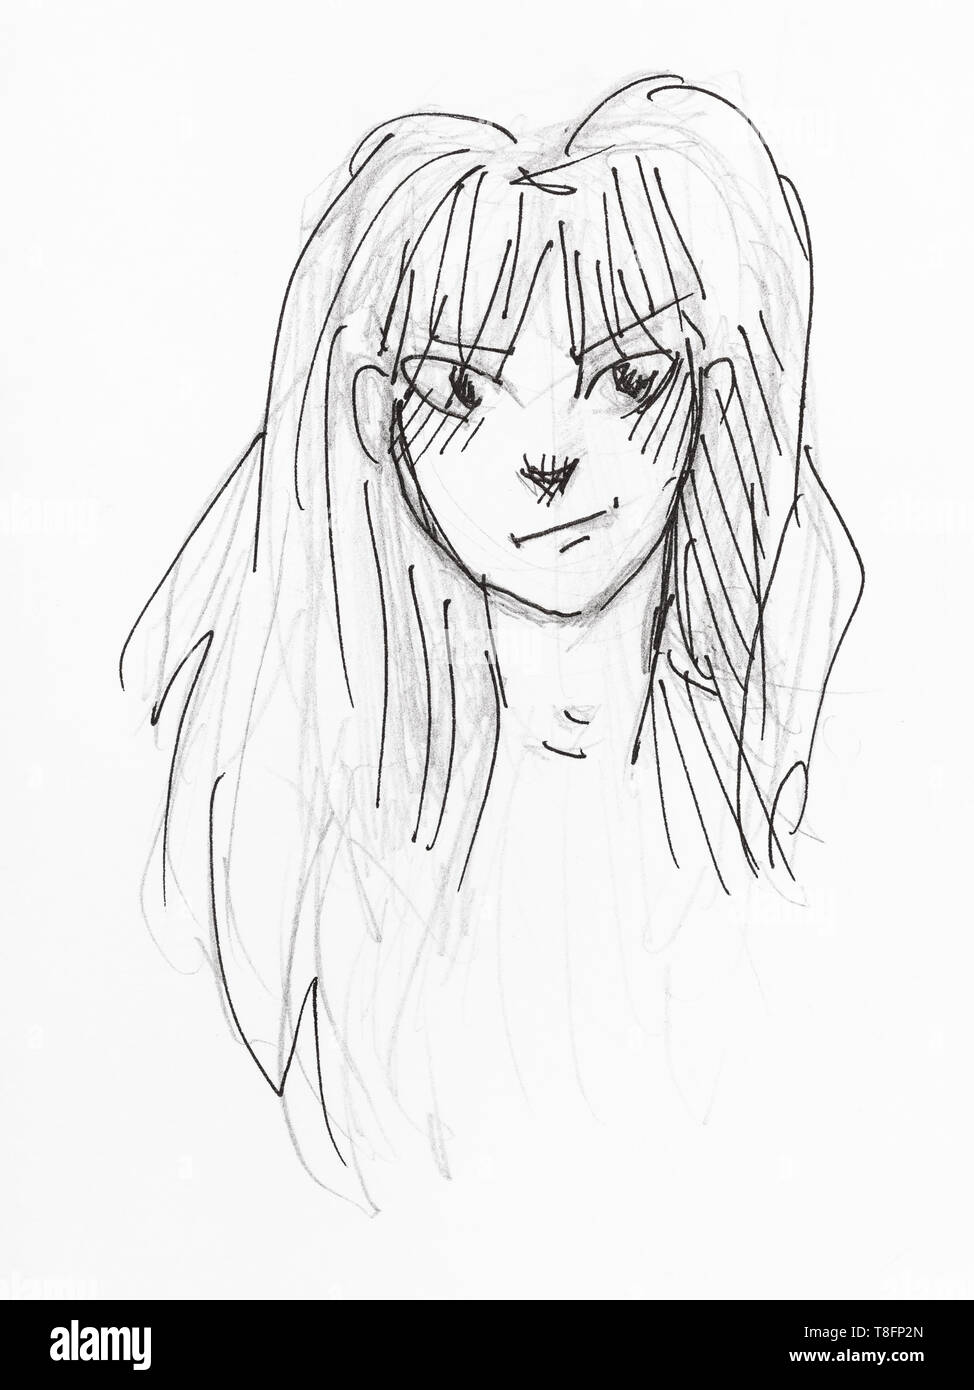 portrait of skeptical young woman with long hair hand-drawn by black pencil and ink on white paper - Stock Image